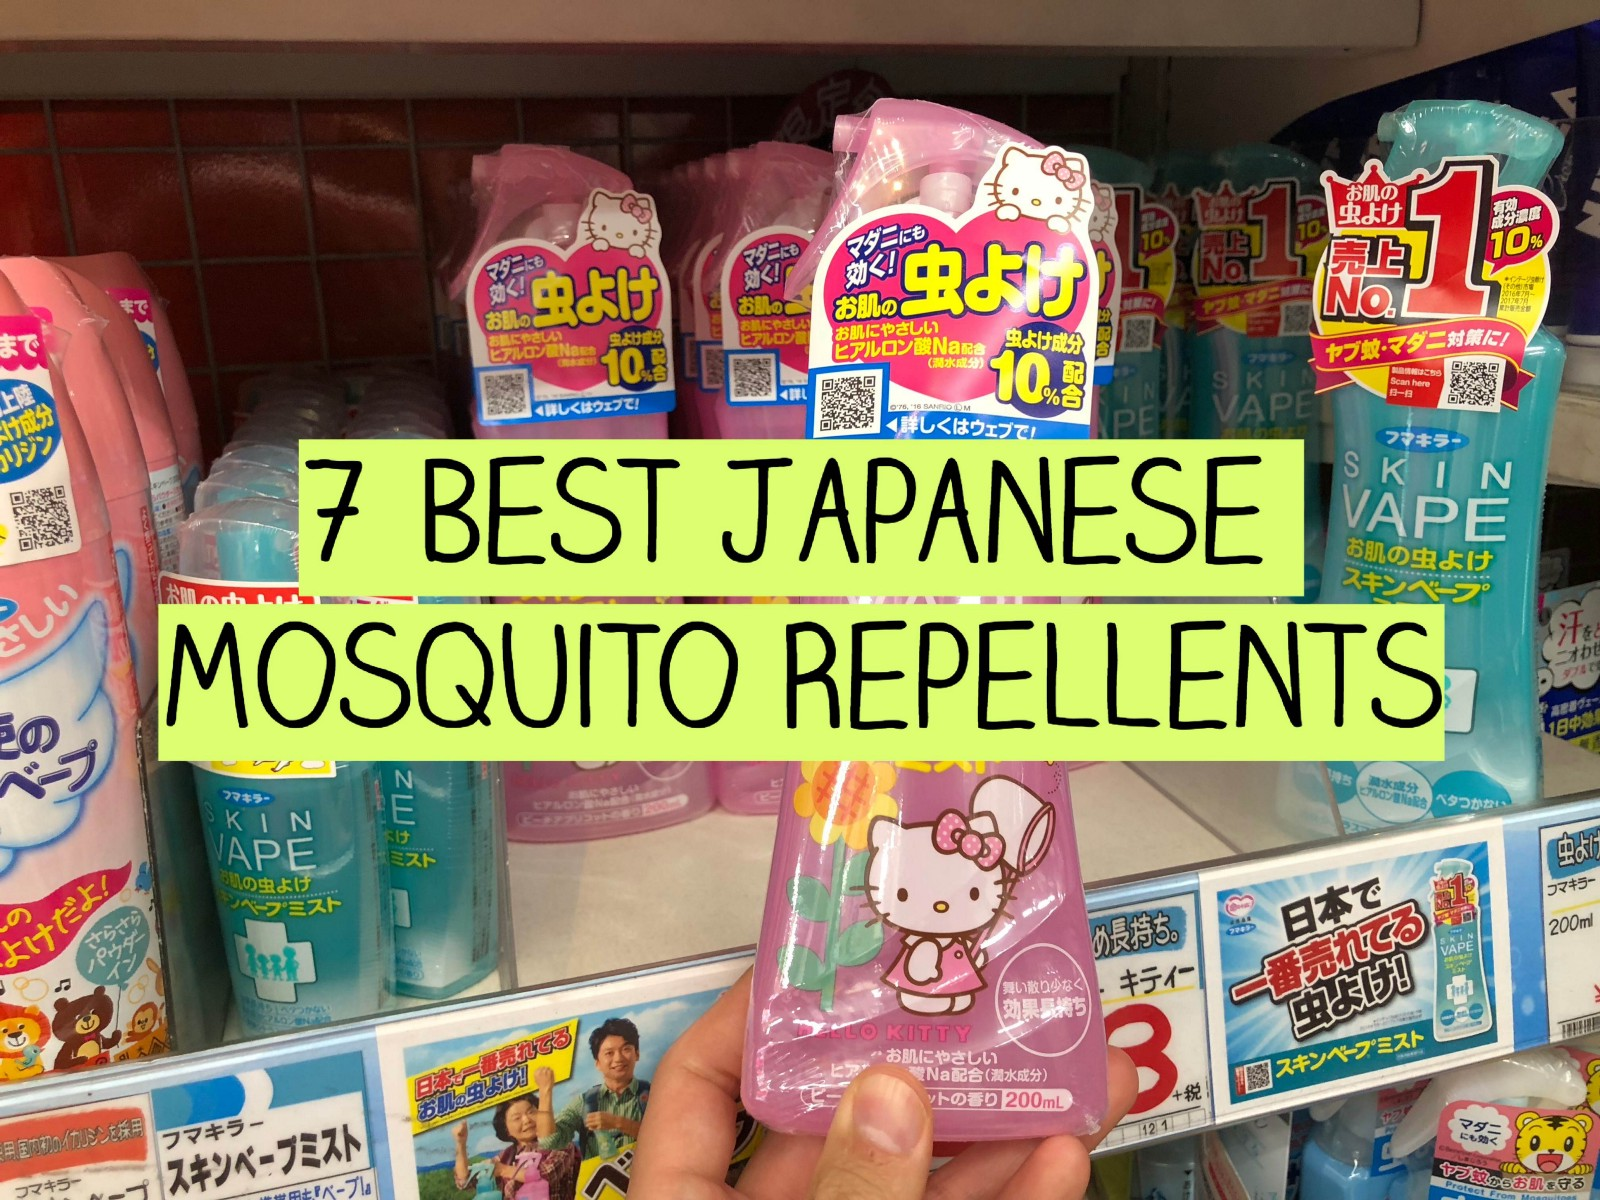 7 Best Japanese Mosquito Repellents 2020 Japan Web Magazine